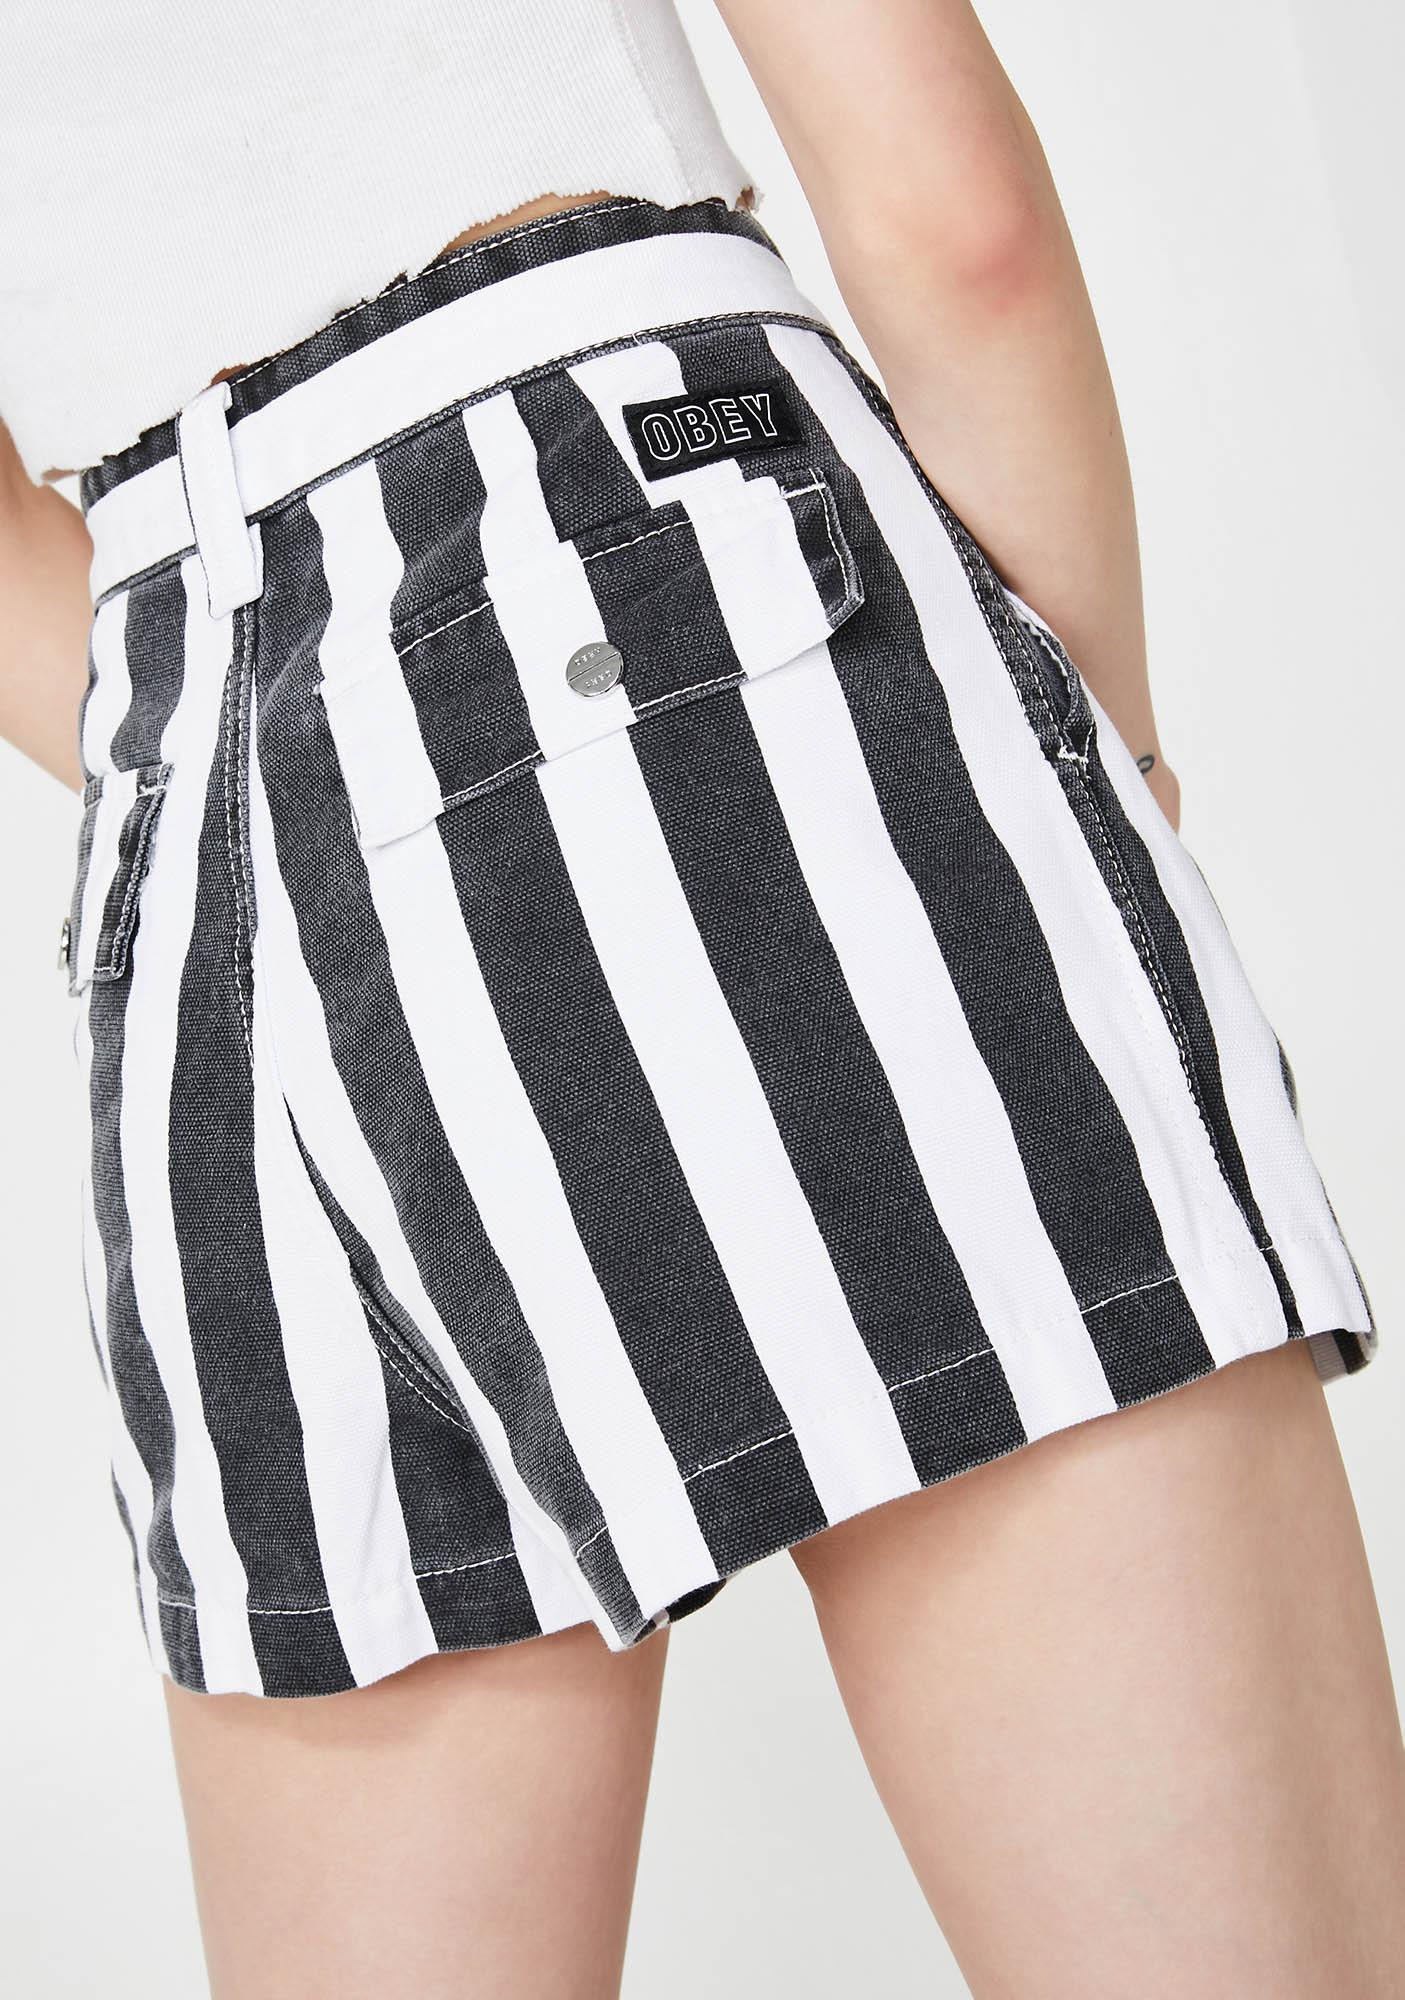 Obey Diana Shorts